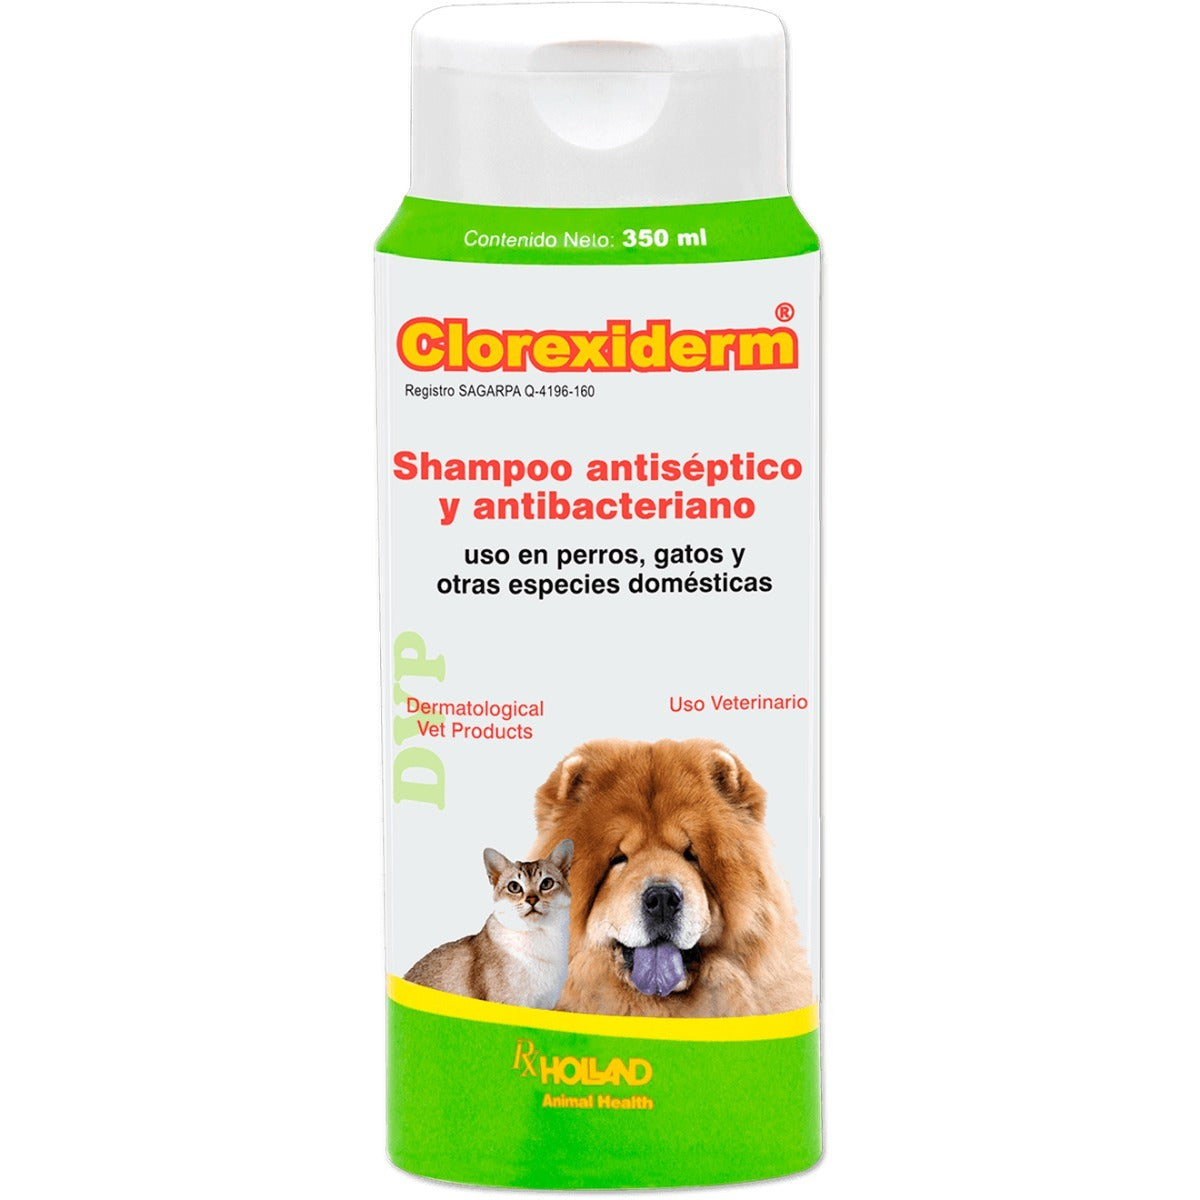 Clorexiderm Holland Para Perros y Gatos Shampoo  De 350 Ml